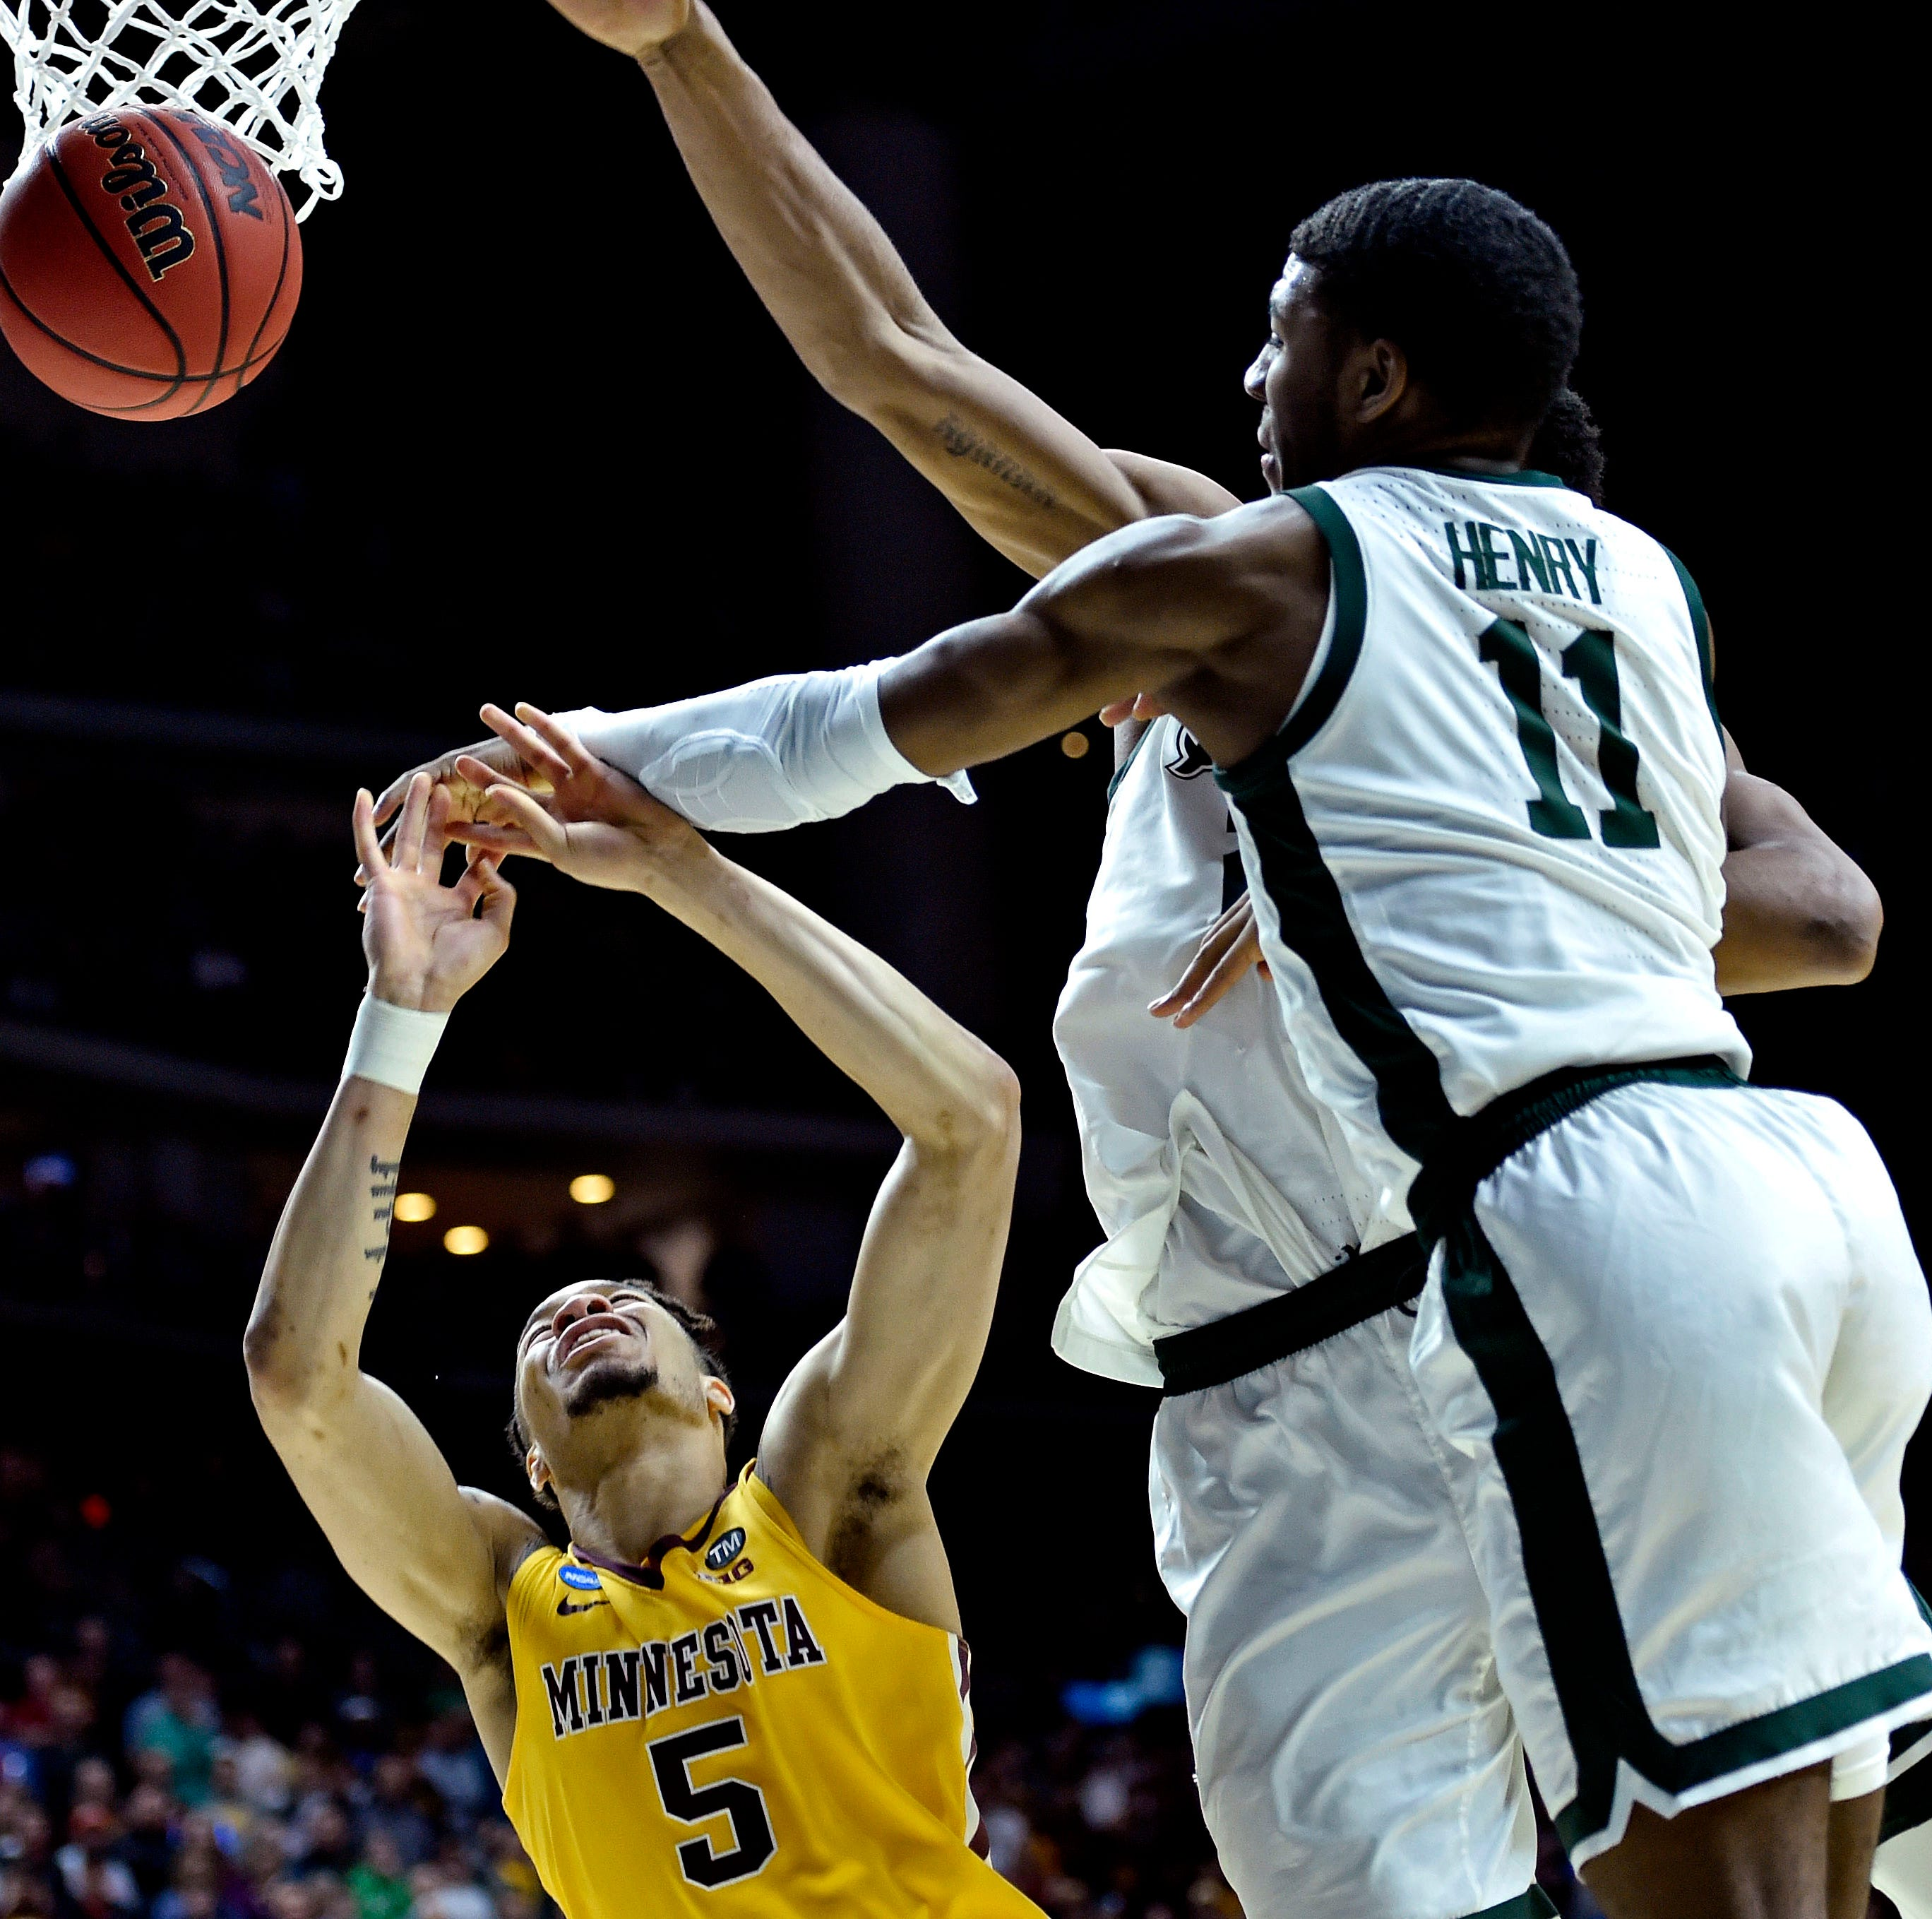 Couch: 3 quick takes on Michigan State basketball's NCAA tournament win over Minnesota